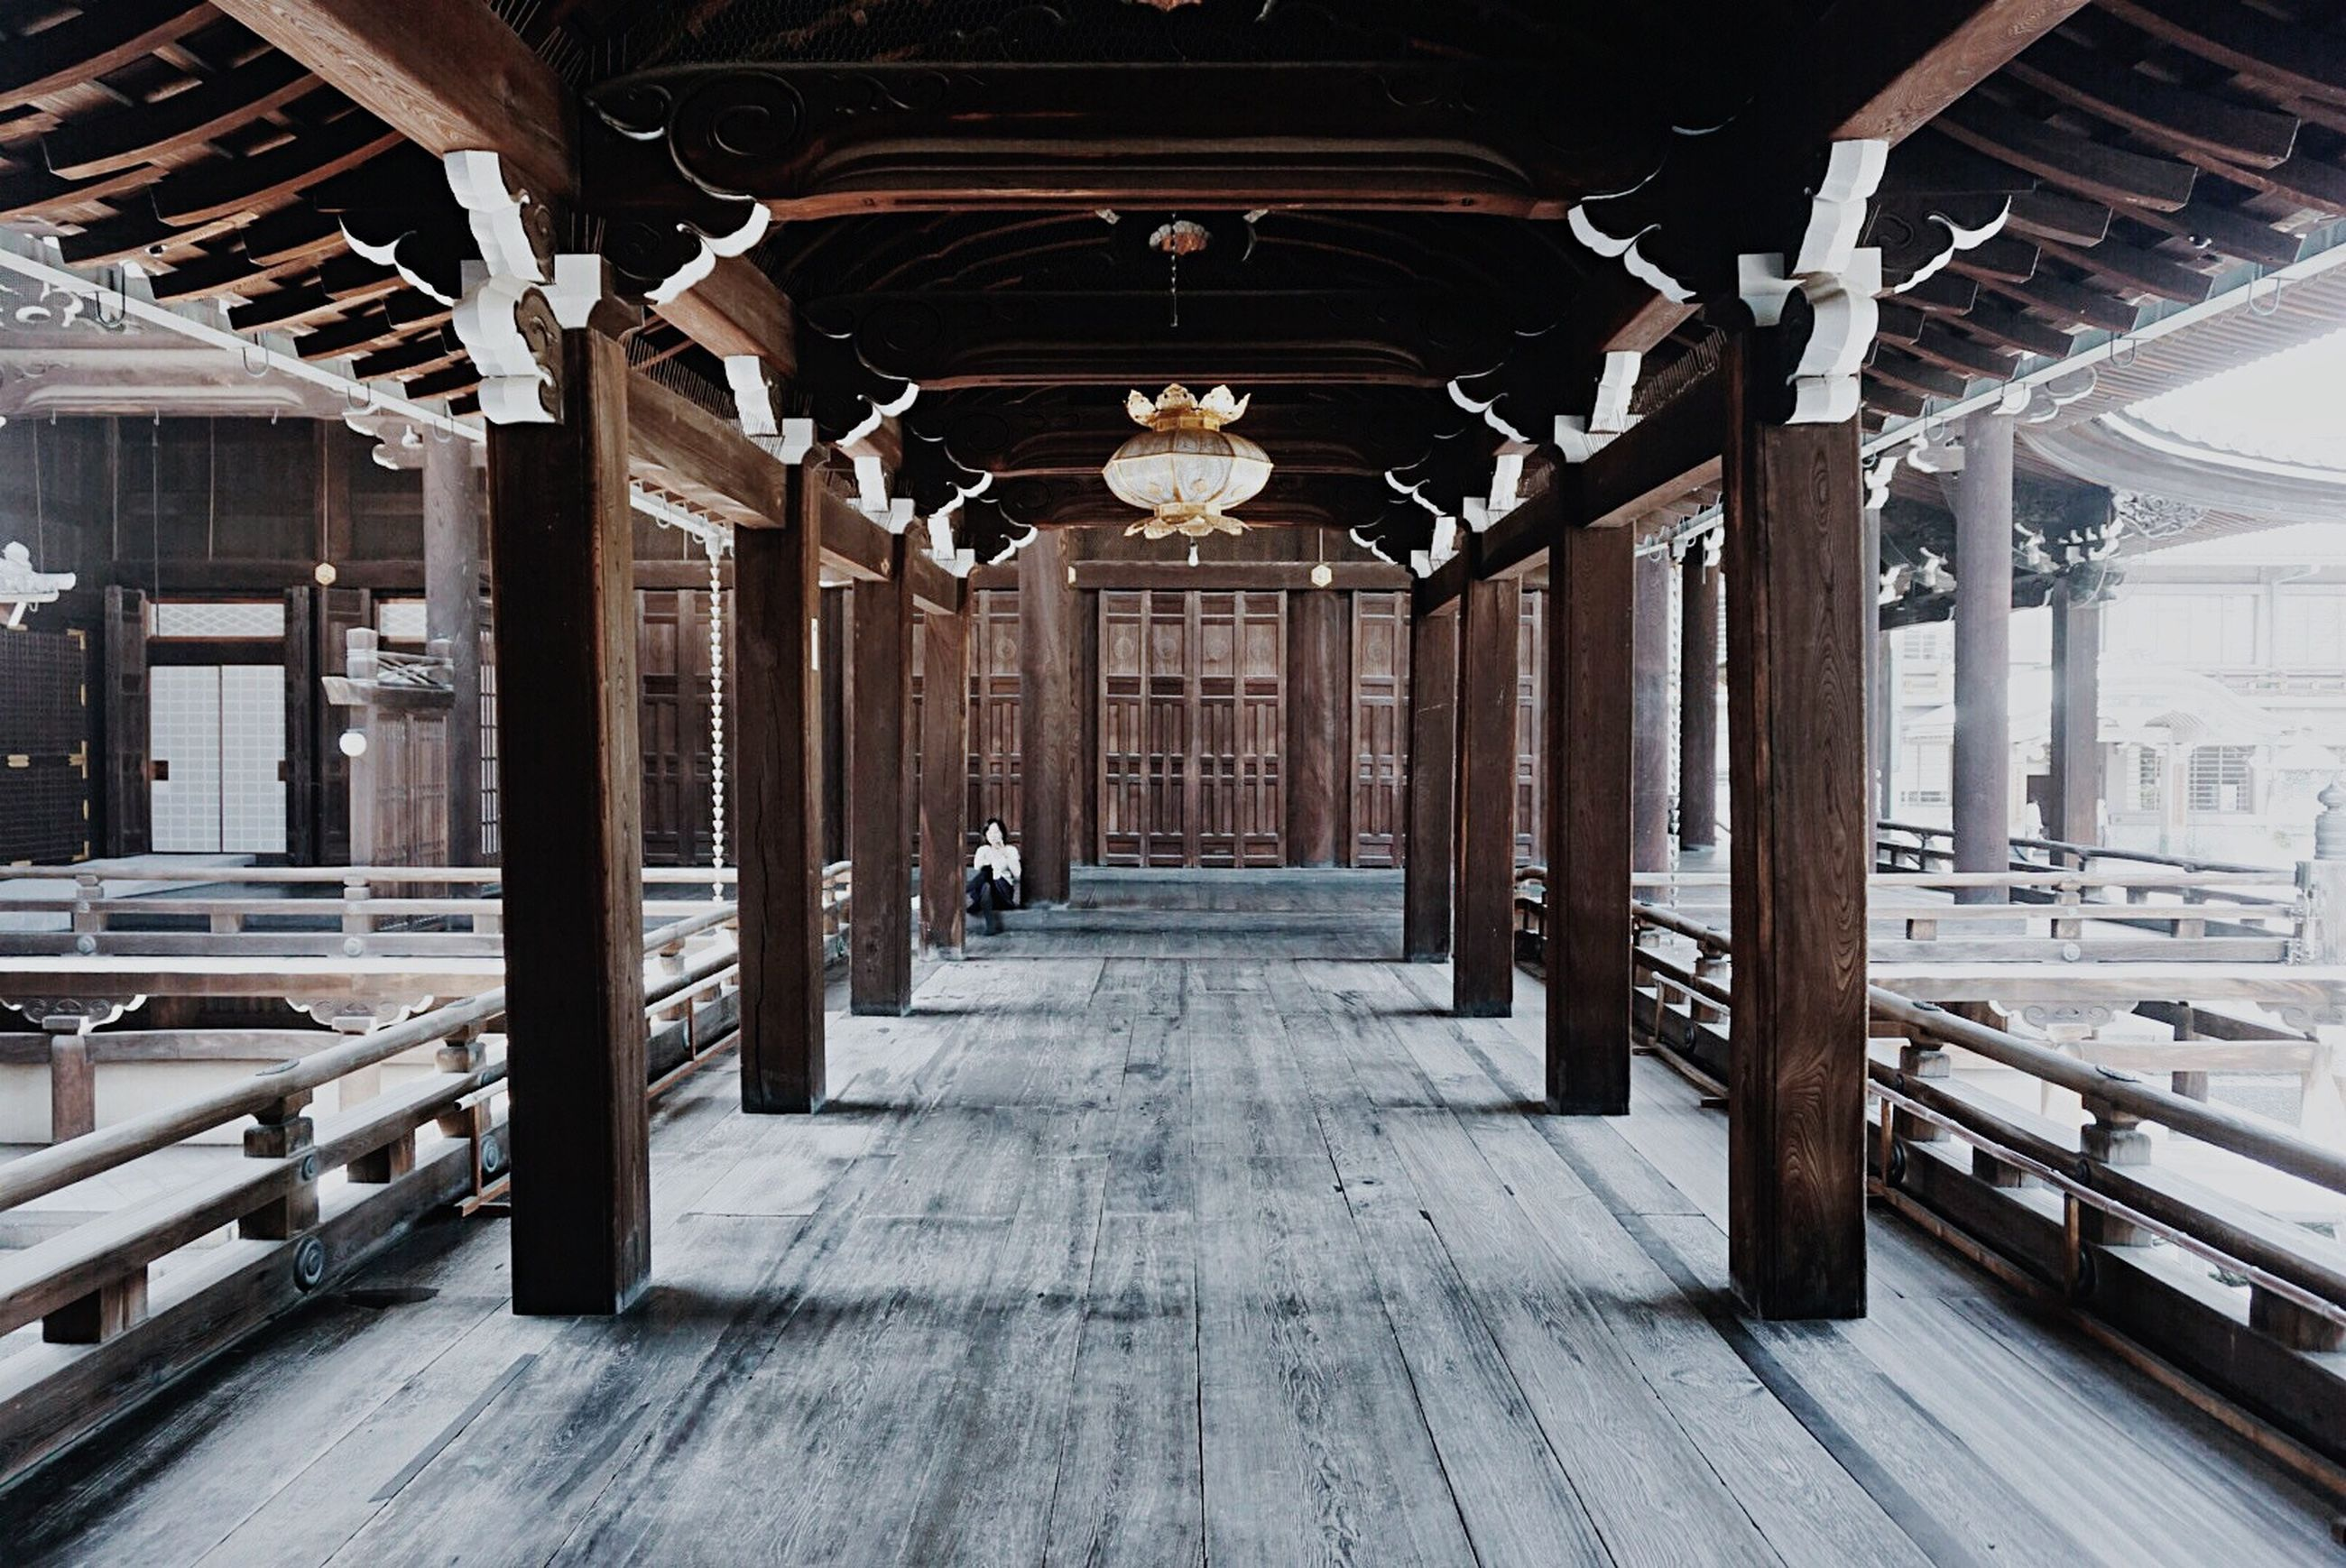 indoors, architecture, built structure, architectural column, the way forward, ceiling, transportation, column, diminishing perspective, travel, corridor, interior, arch, empty, incidental people, vanishing point, colonnade, travel destinations, absence, railroad station